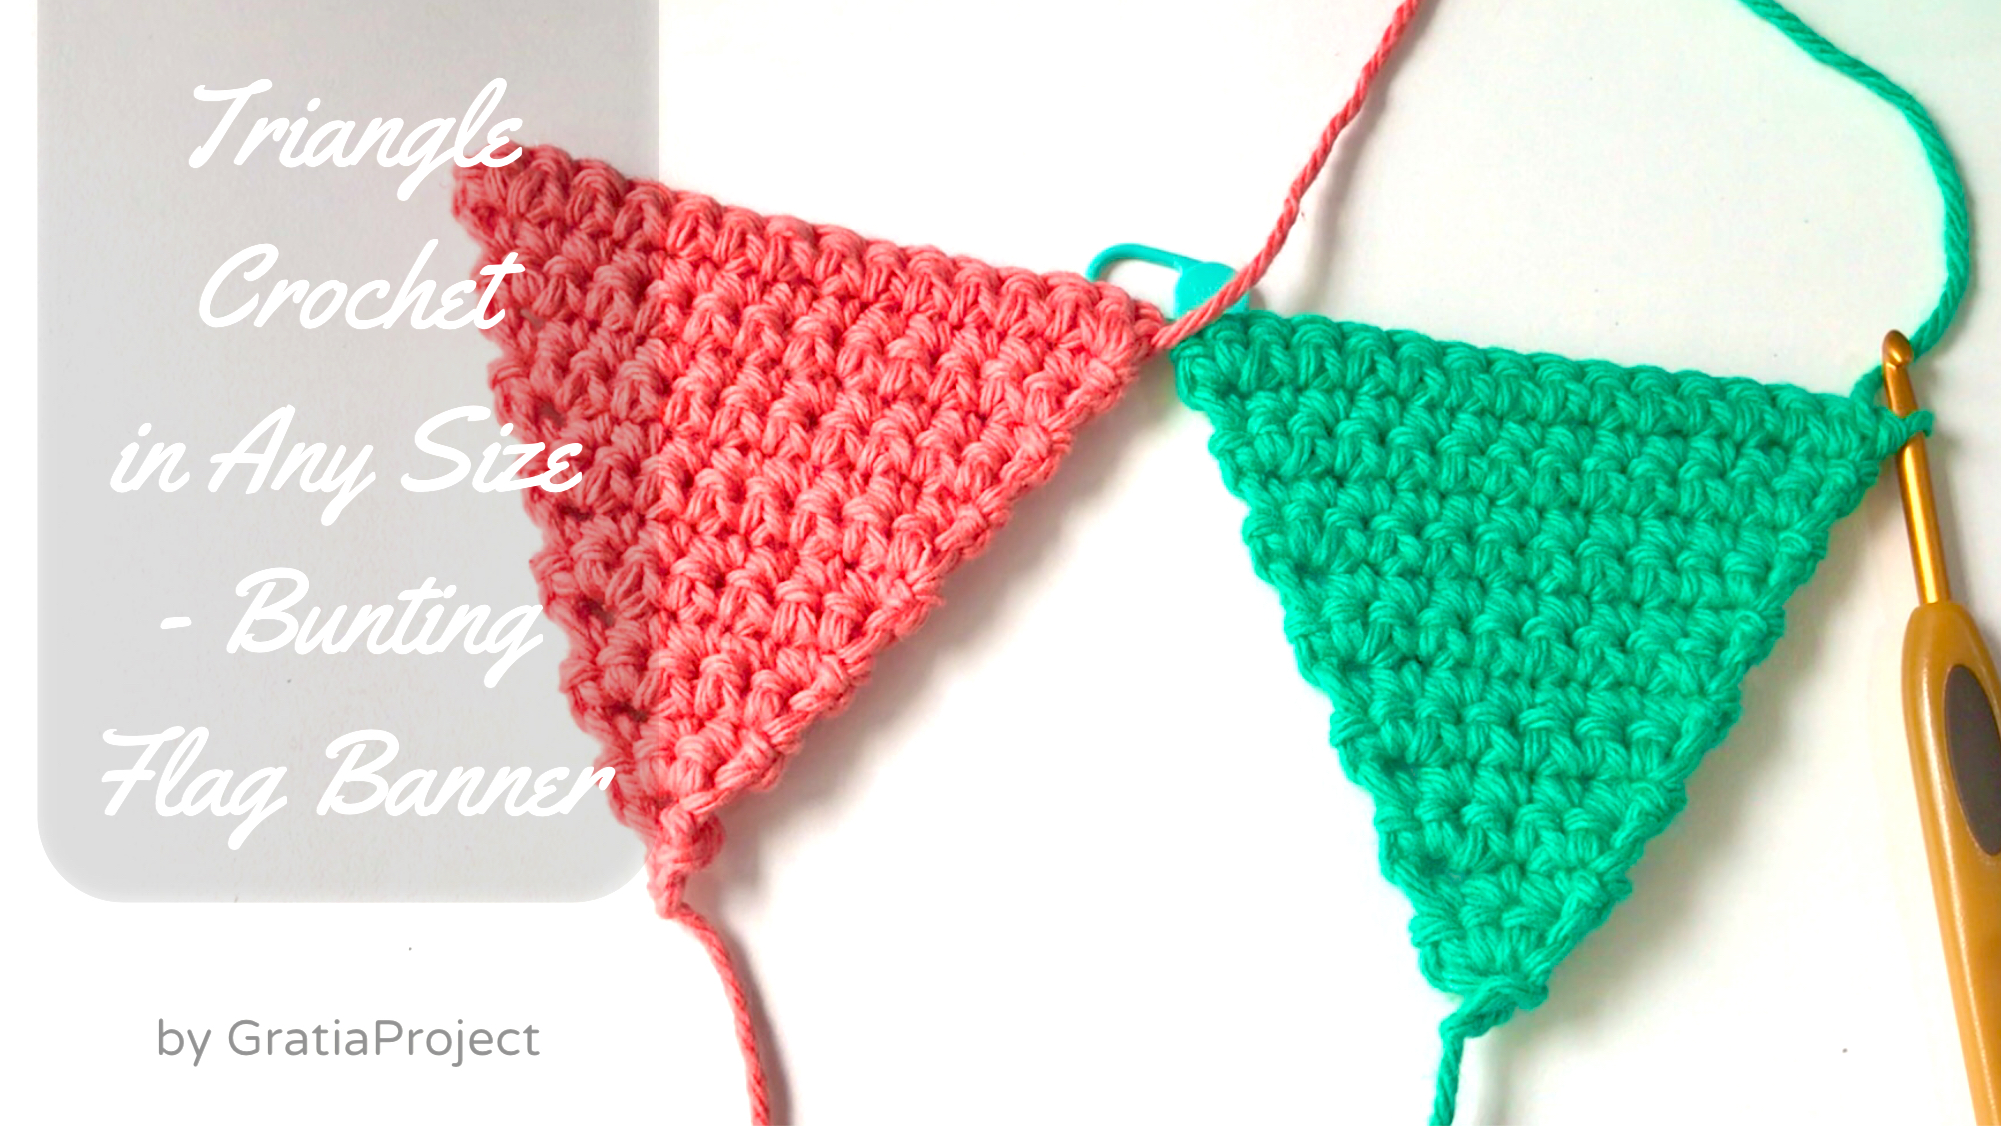 Triangle Crochet in Any Size   Bunting Flag Banners